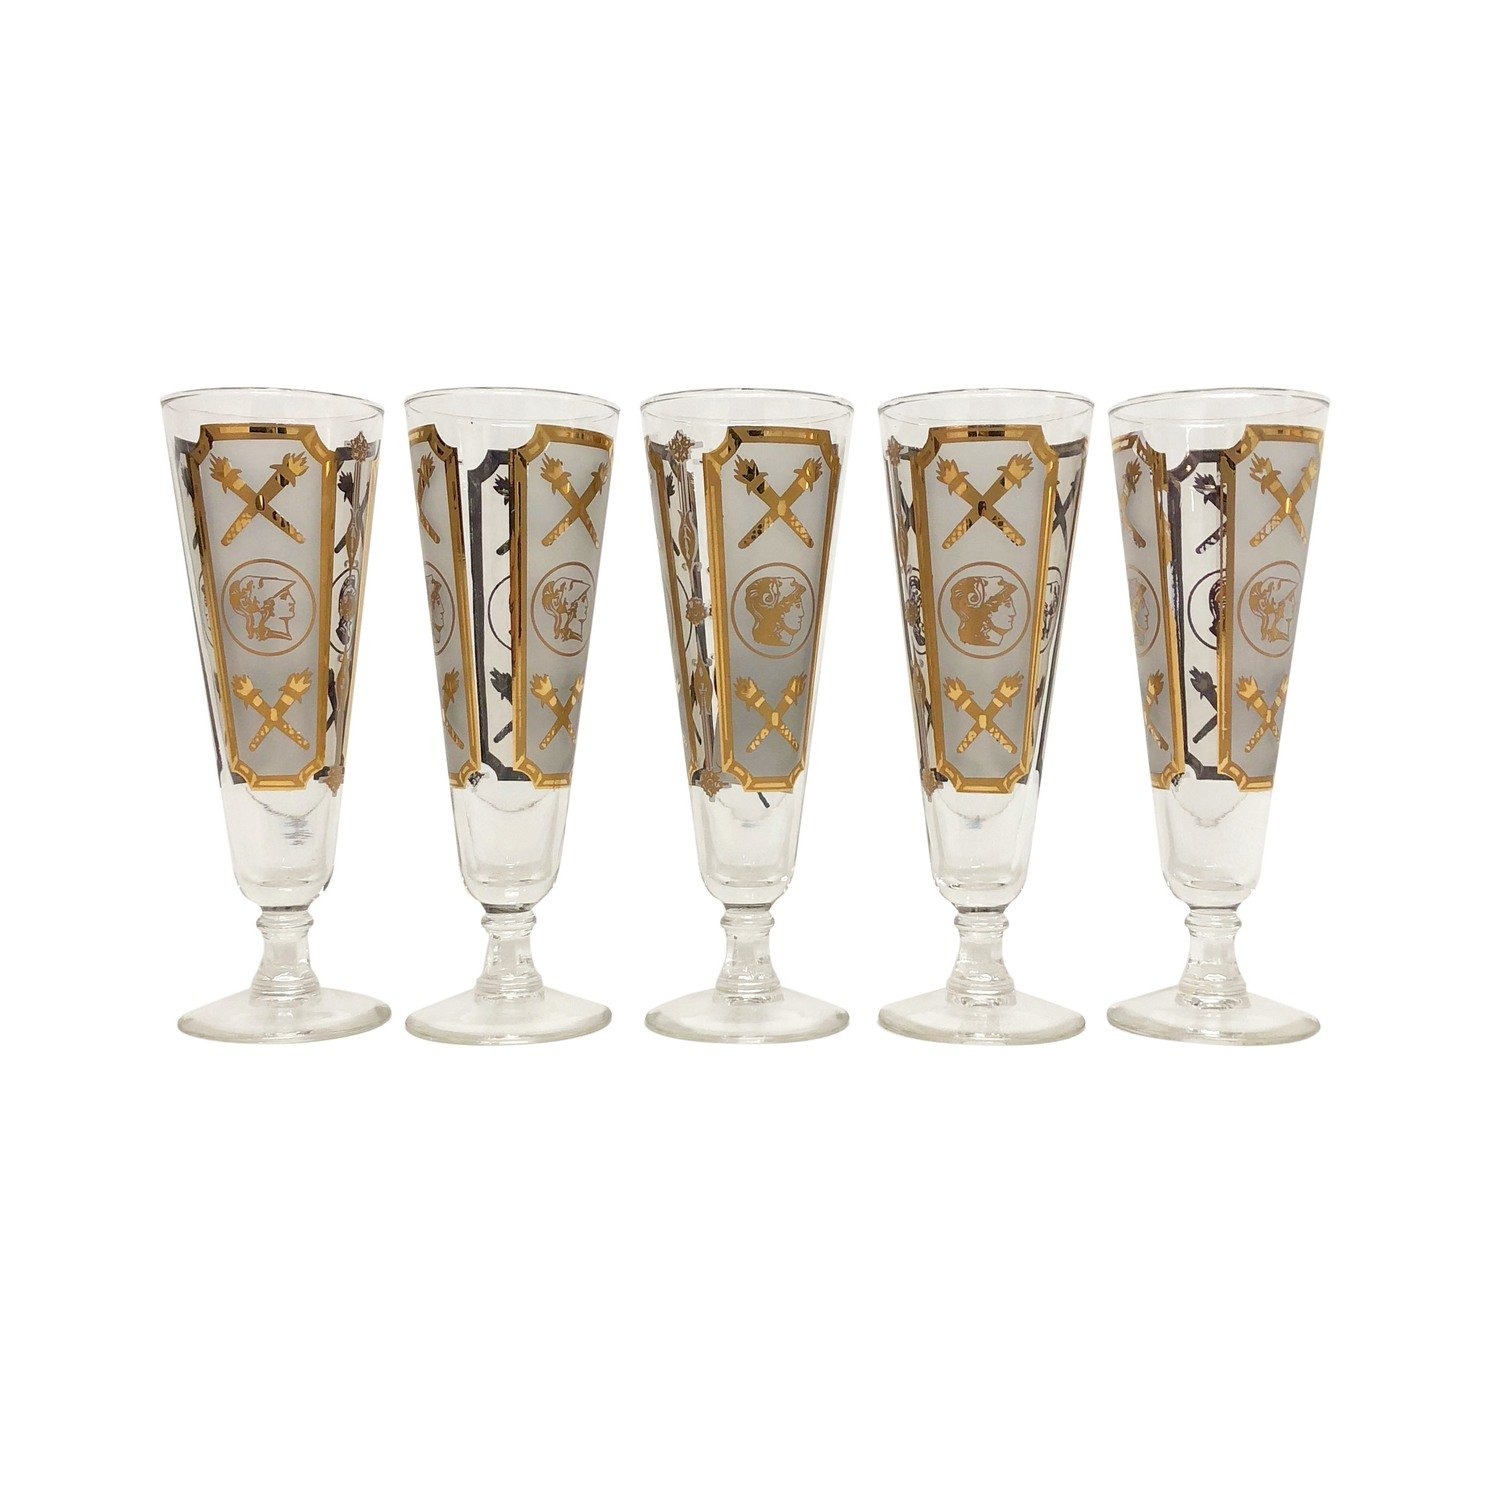 Mid Century Set of 5 Beer Steins in Frosted Glass